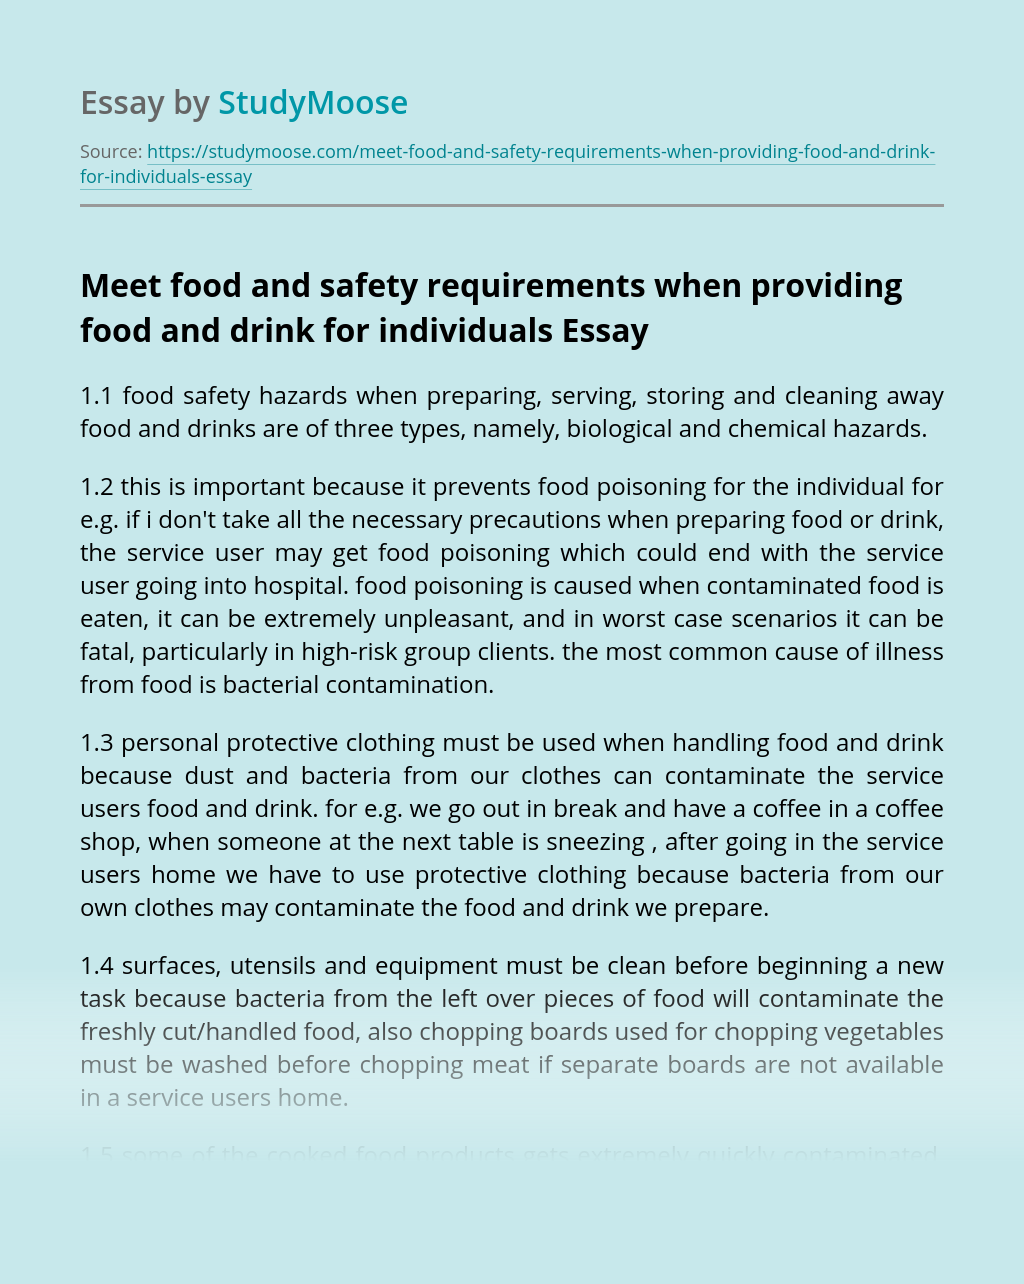 Meet food and safety requirements when providing food and drink for individuals